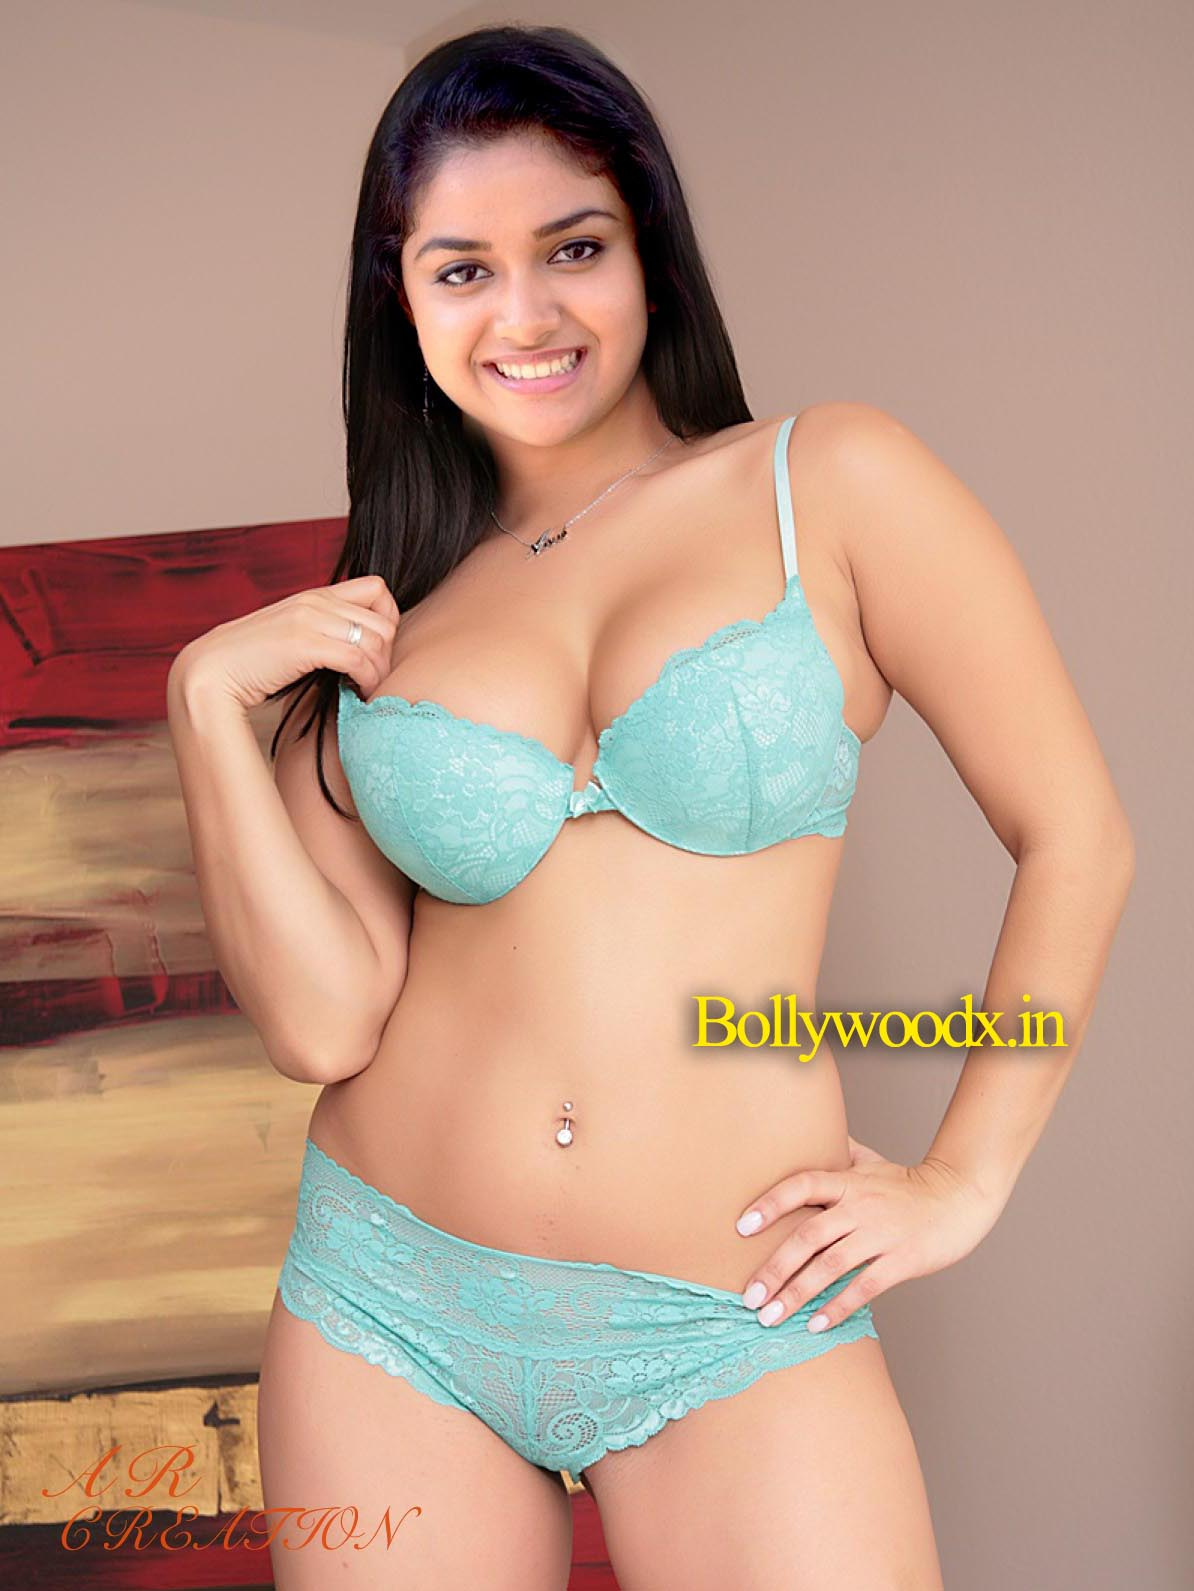 Malayalam sexy photos fully nekad theme